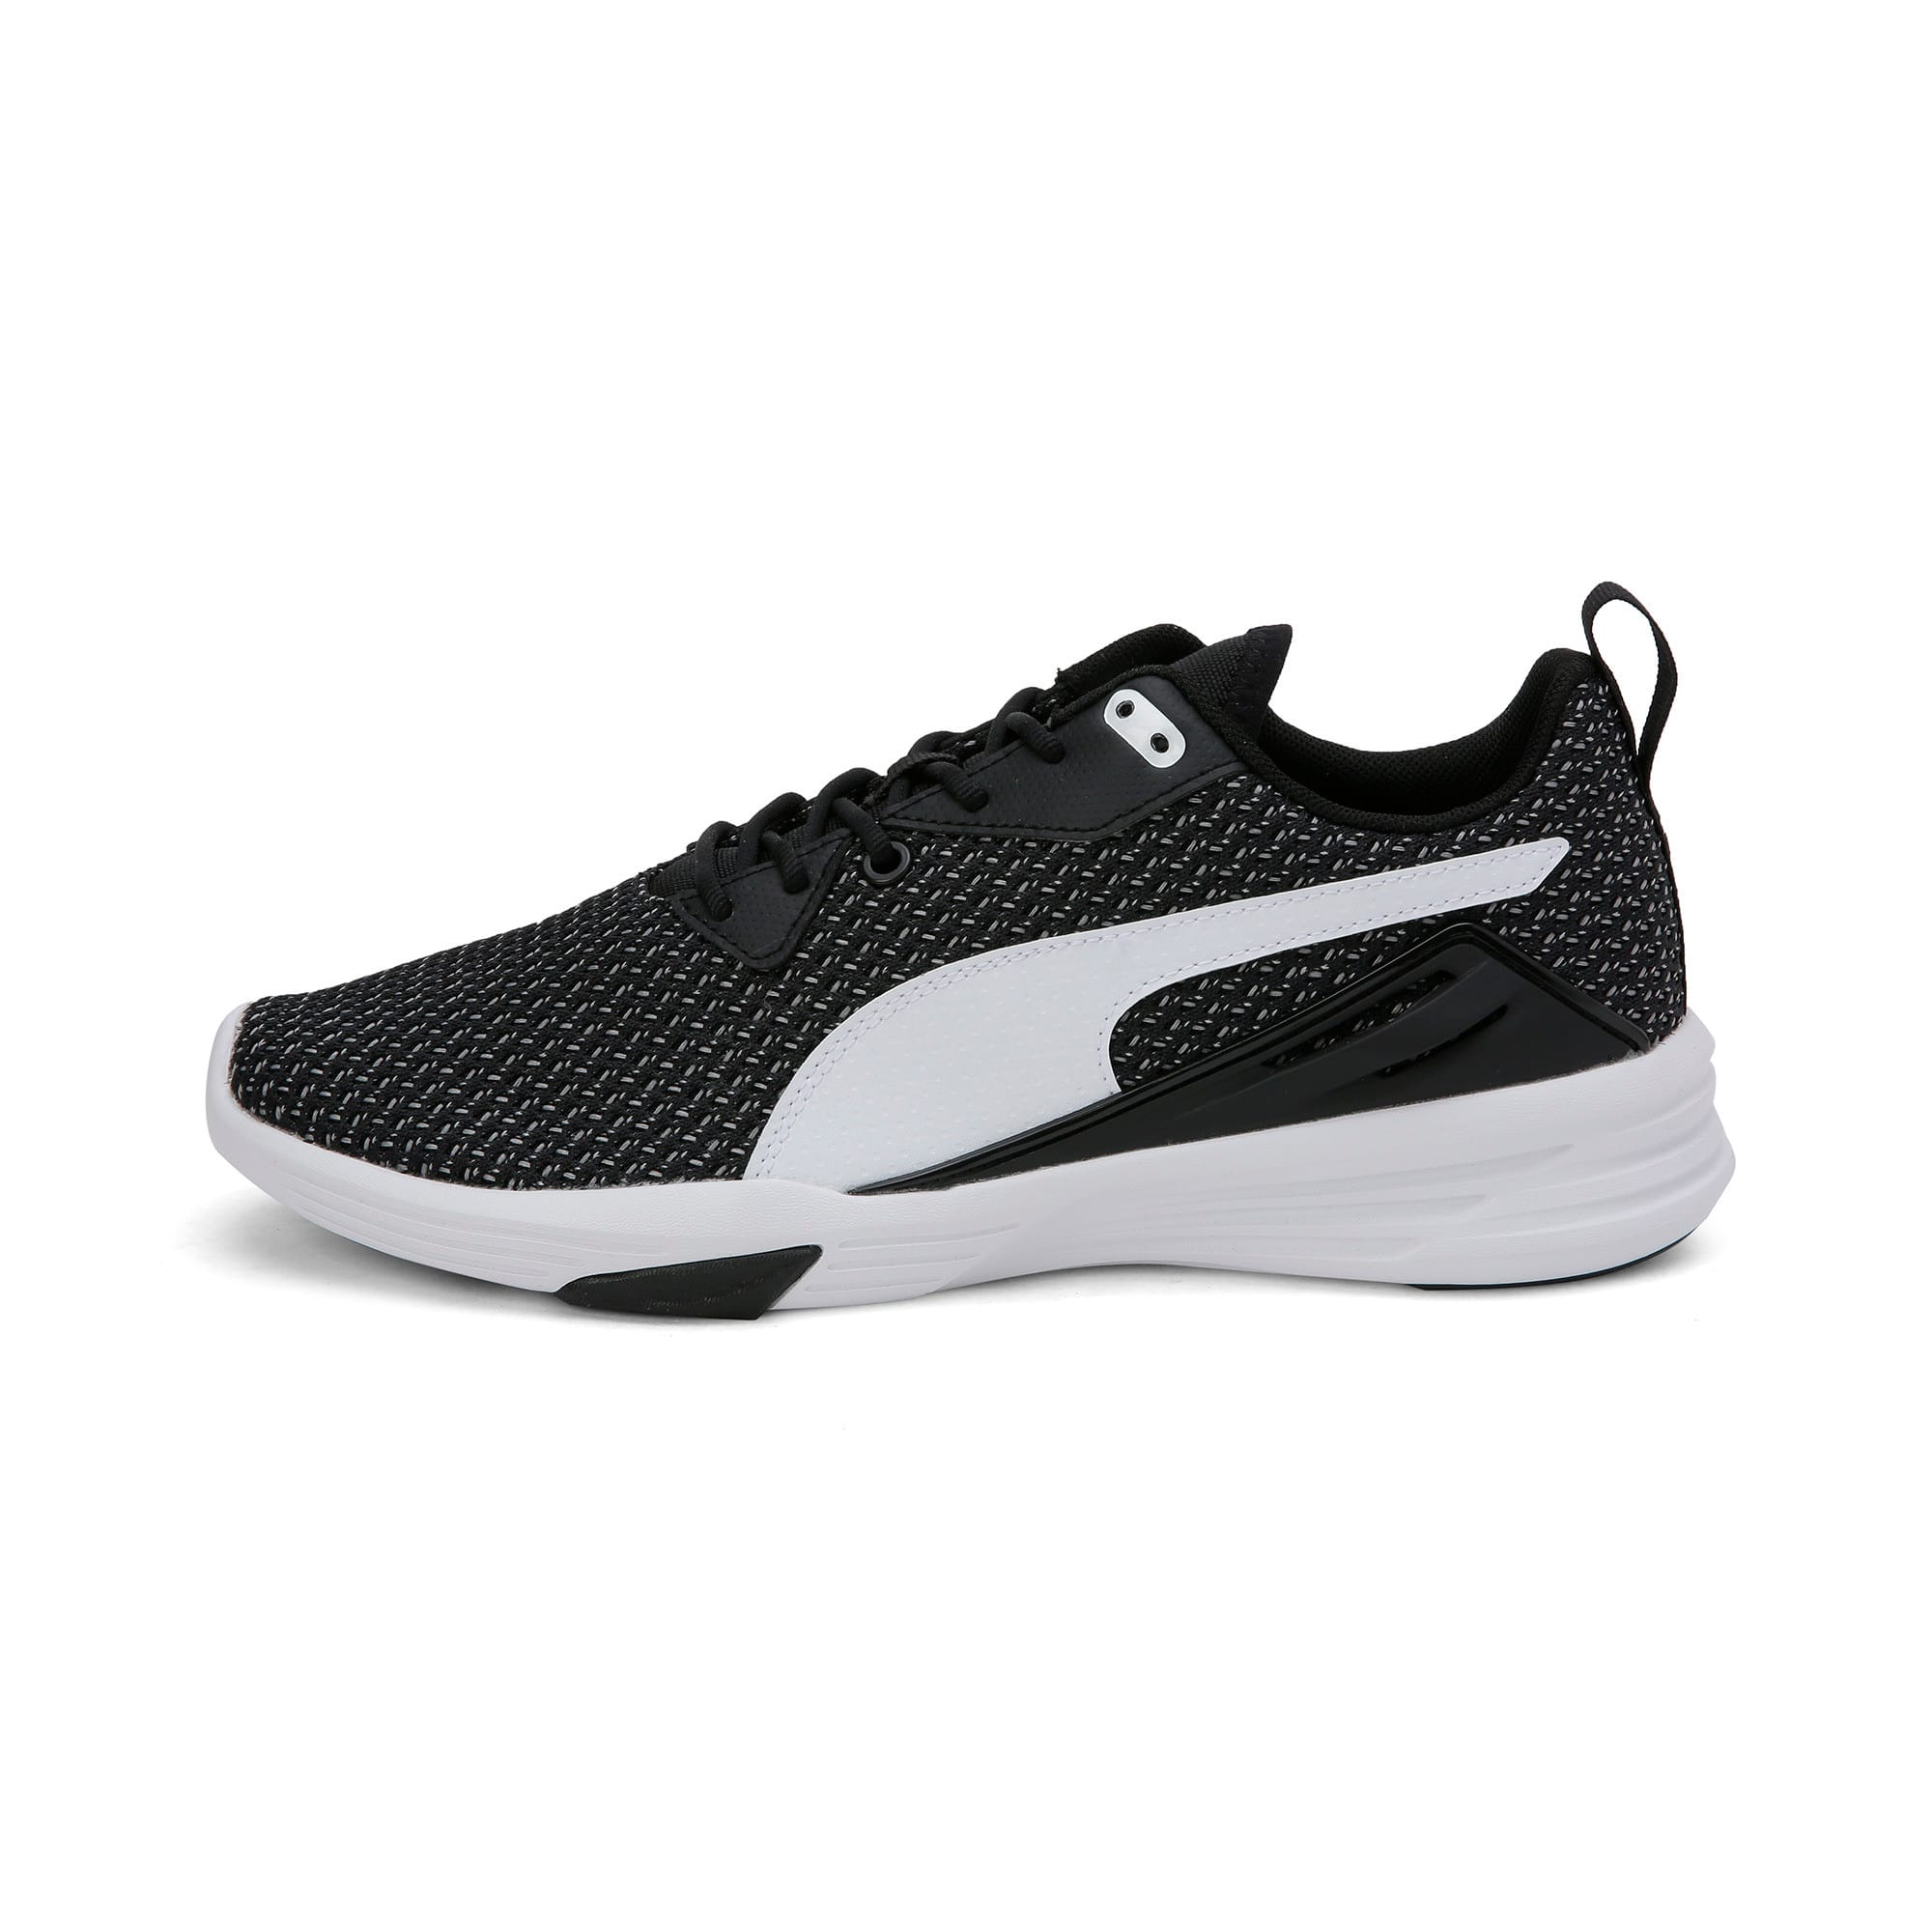 Thumbnail 1 of Aura XT Men's Trainers, Puma Black-Puma White, medium-IND